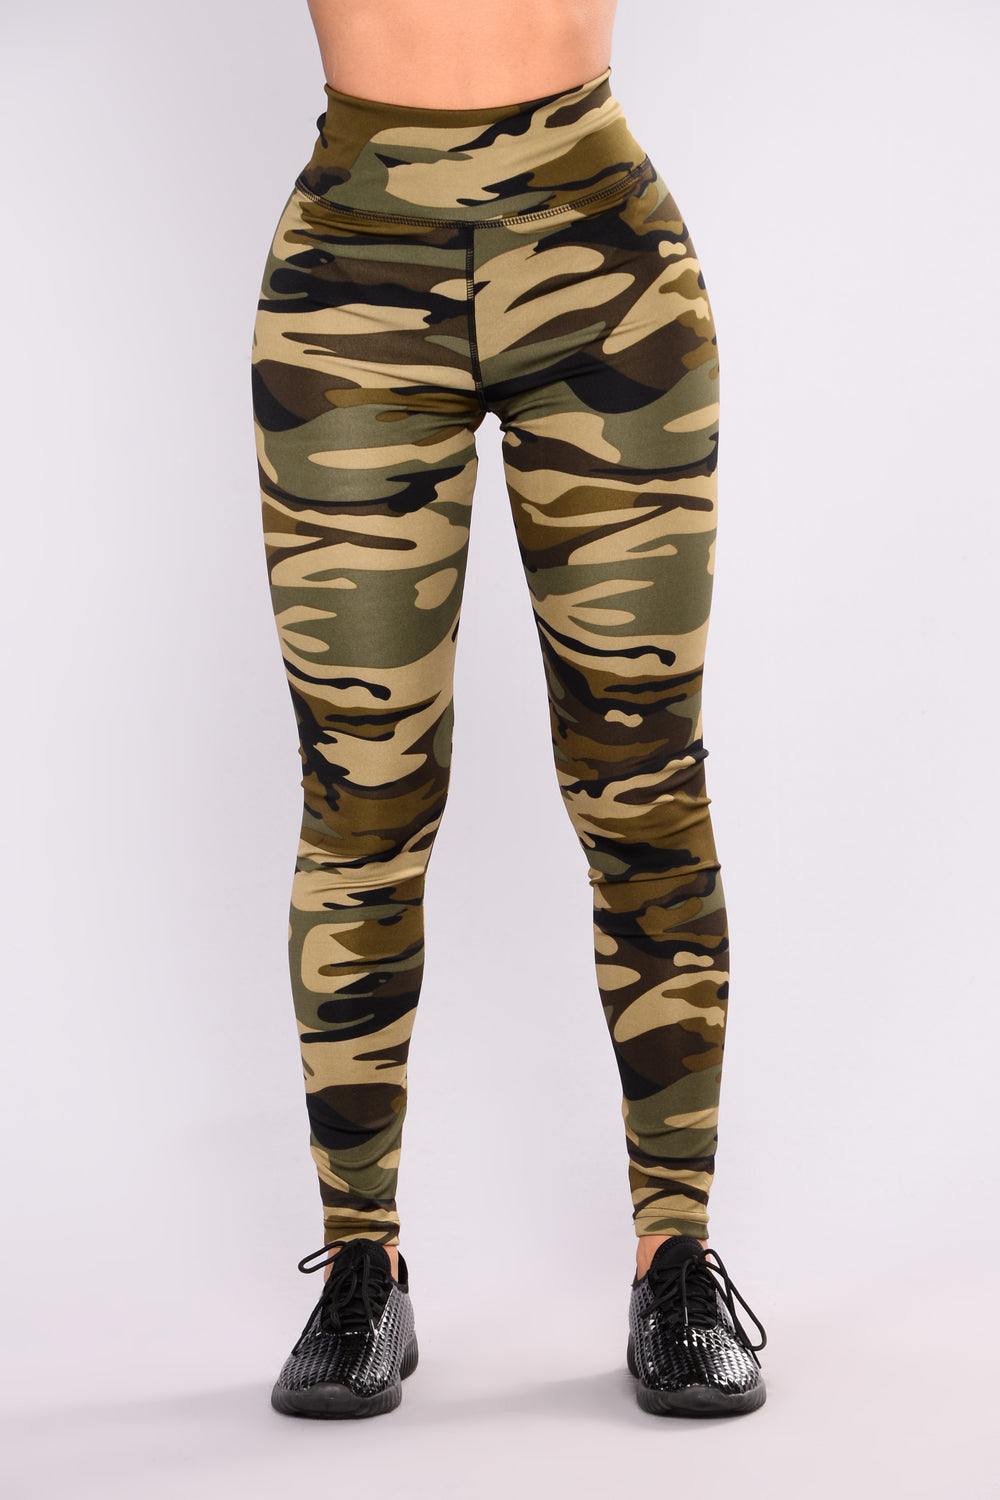 All Over The Place Print Leggings - Camo